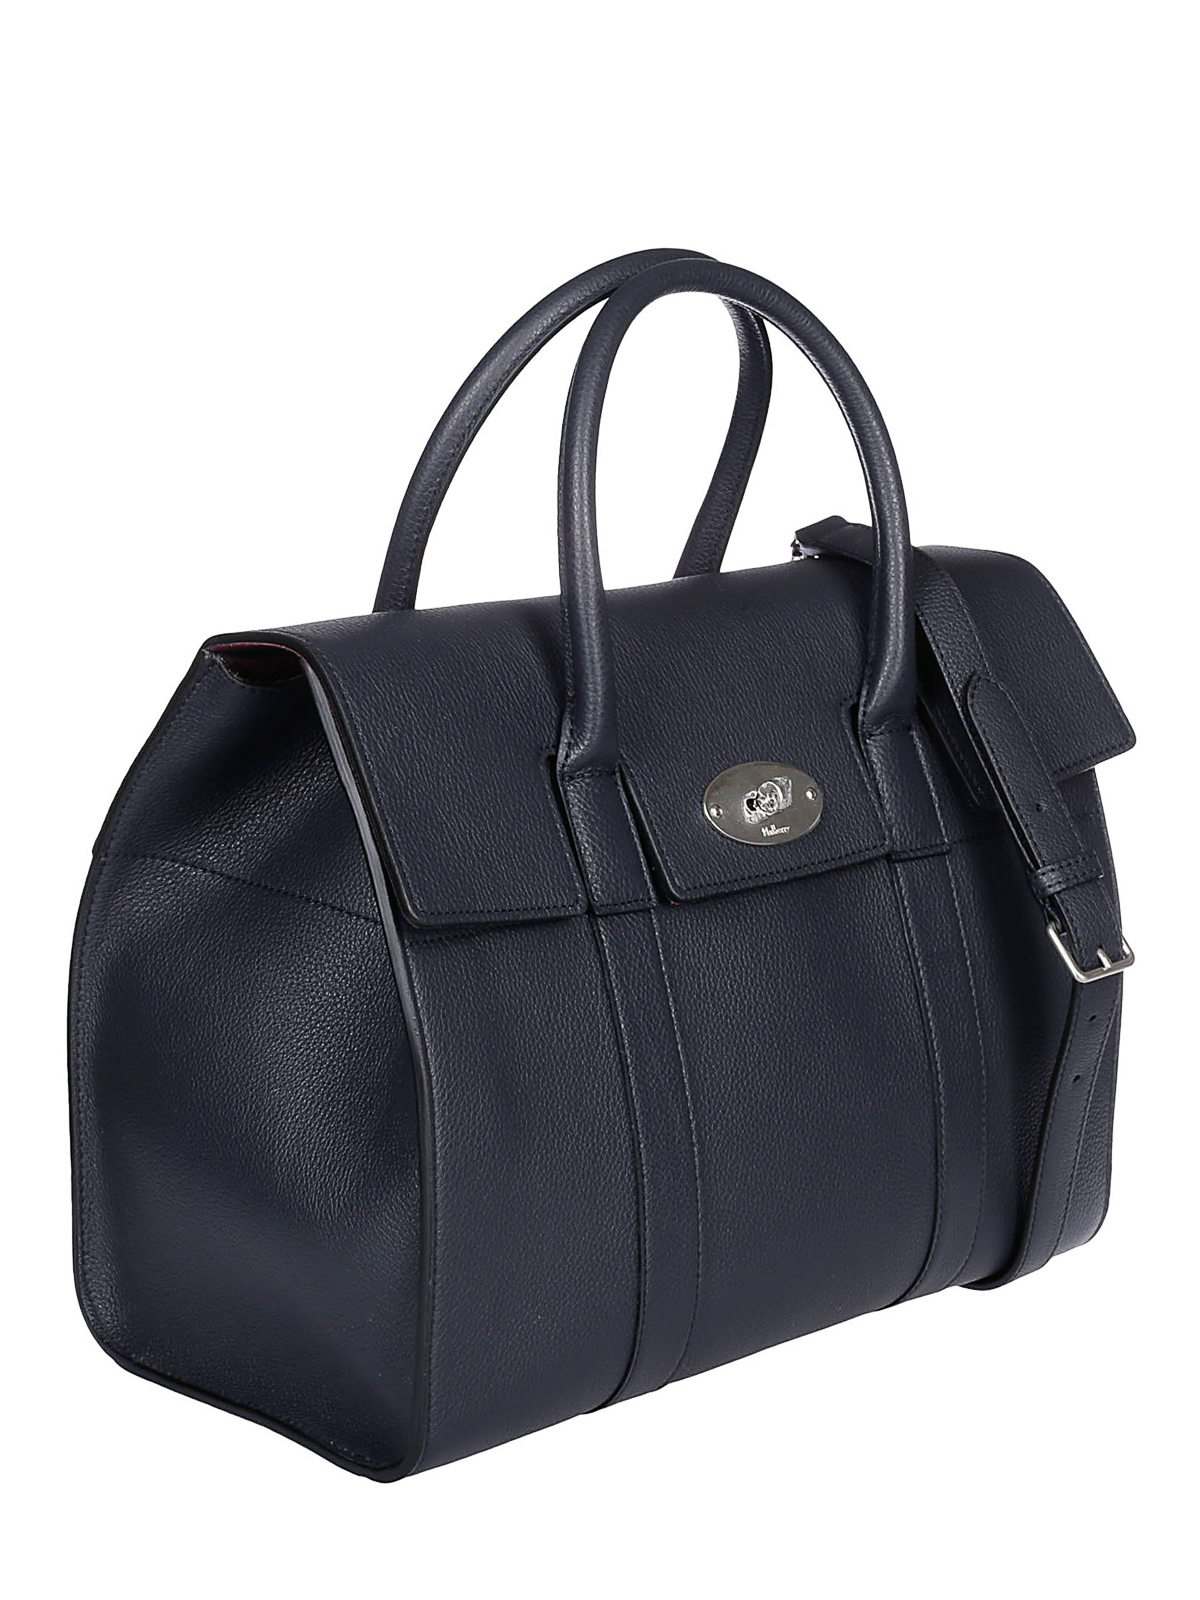 5c752d1116 MULBERRY: totes bags online - Bayswater midnight blue leather tote